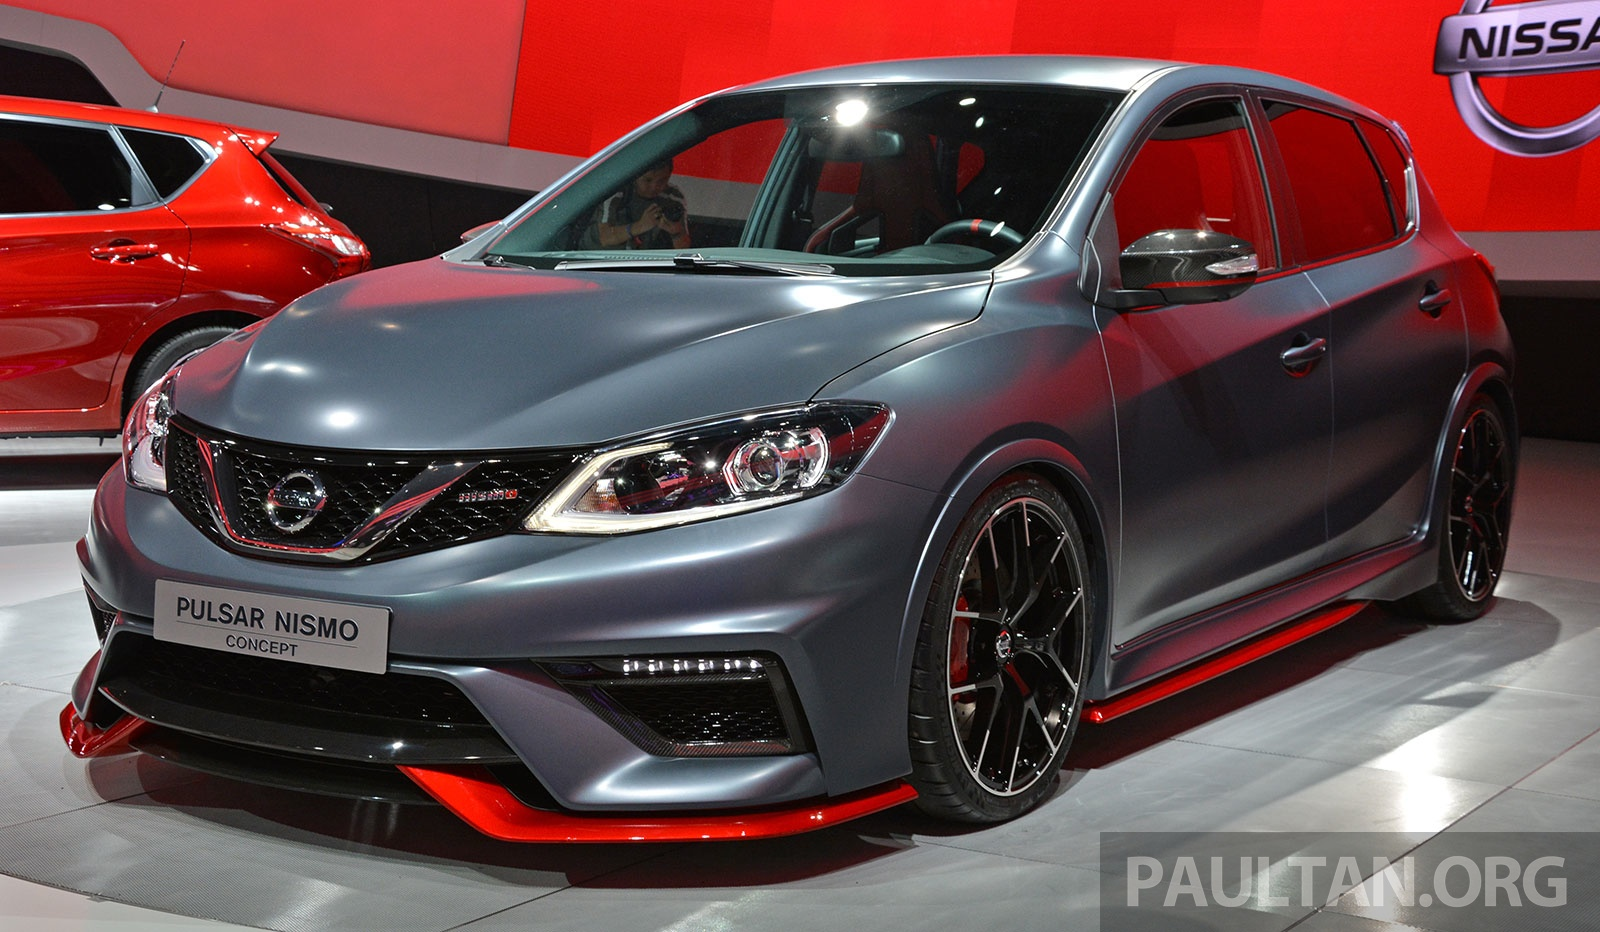 Nissan Pulsar Nismo Concept Unveiled At Paris Show One Step Closer To Taking On The Golf Gti